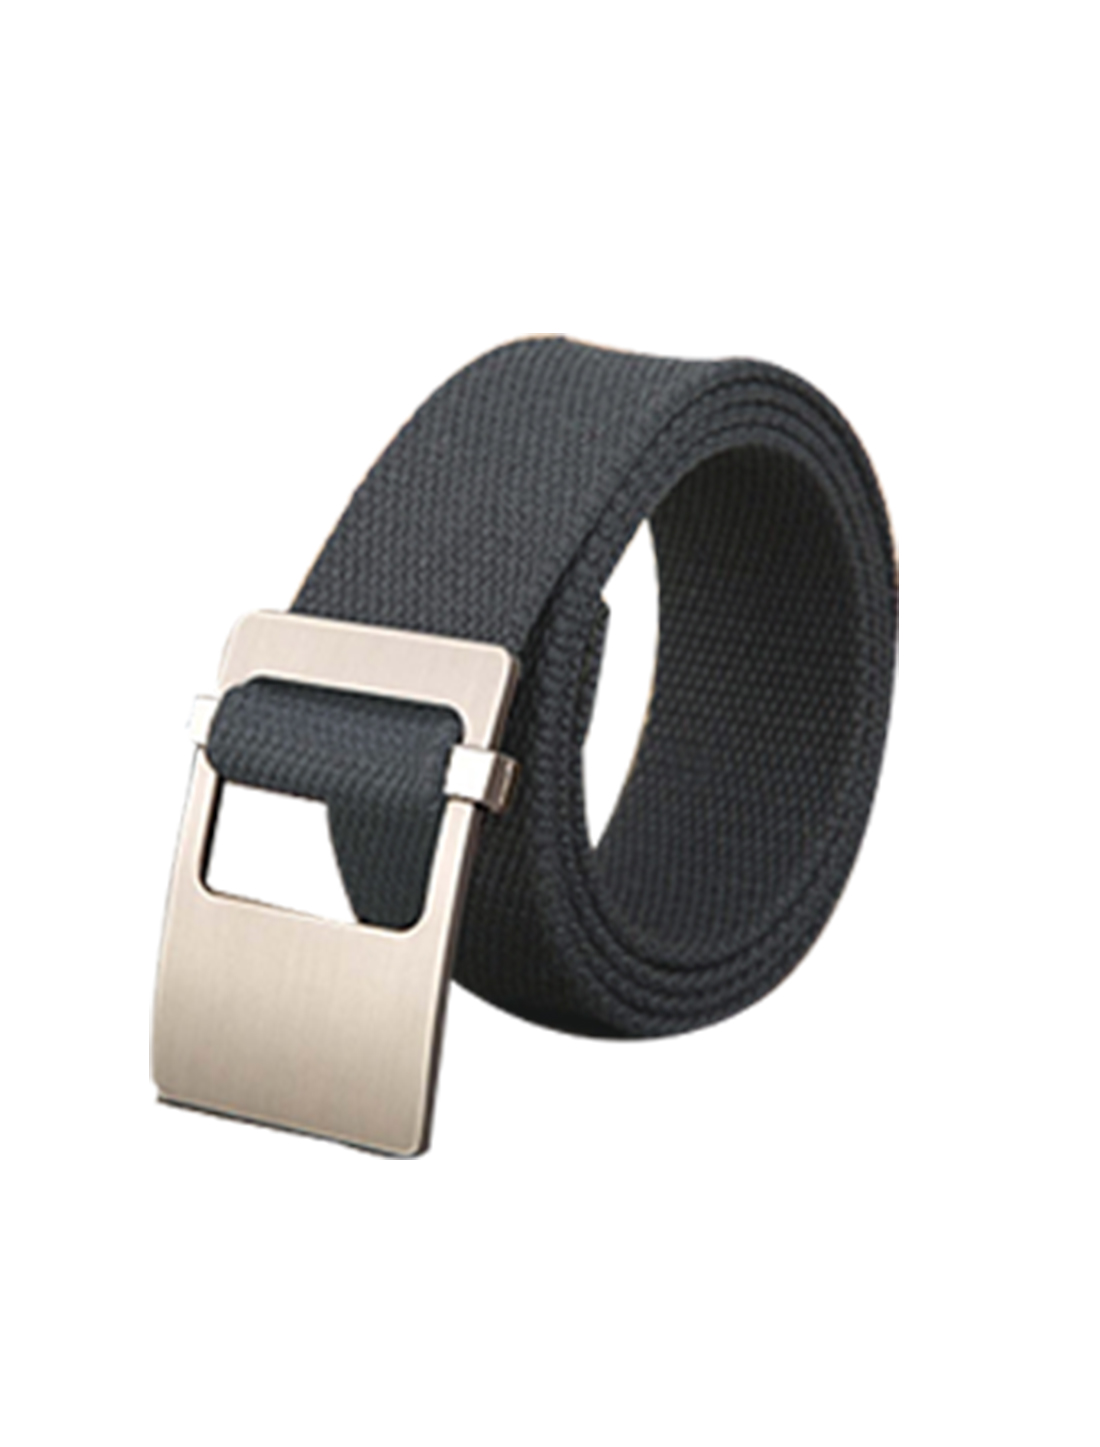 Unisex Canvas Adjustable Holeless Flat Metal Buckle Solid Color Belt Dark Gray